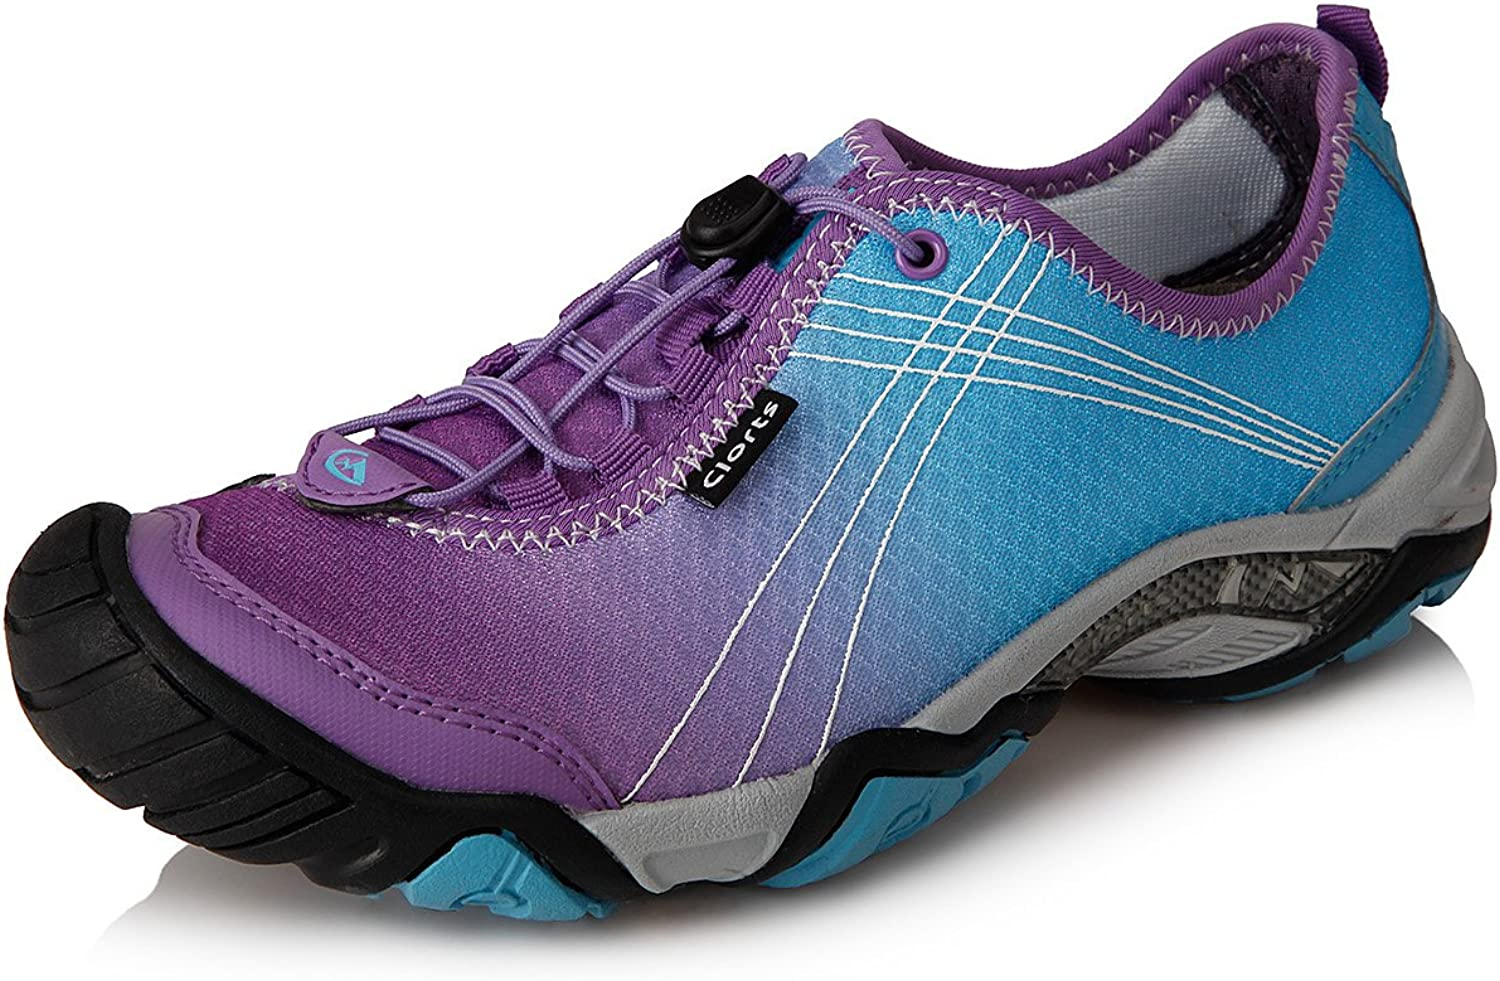 Qianling Collection Women's Water PU Athletic Quick Drying Water shoes Purple